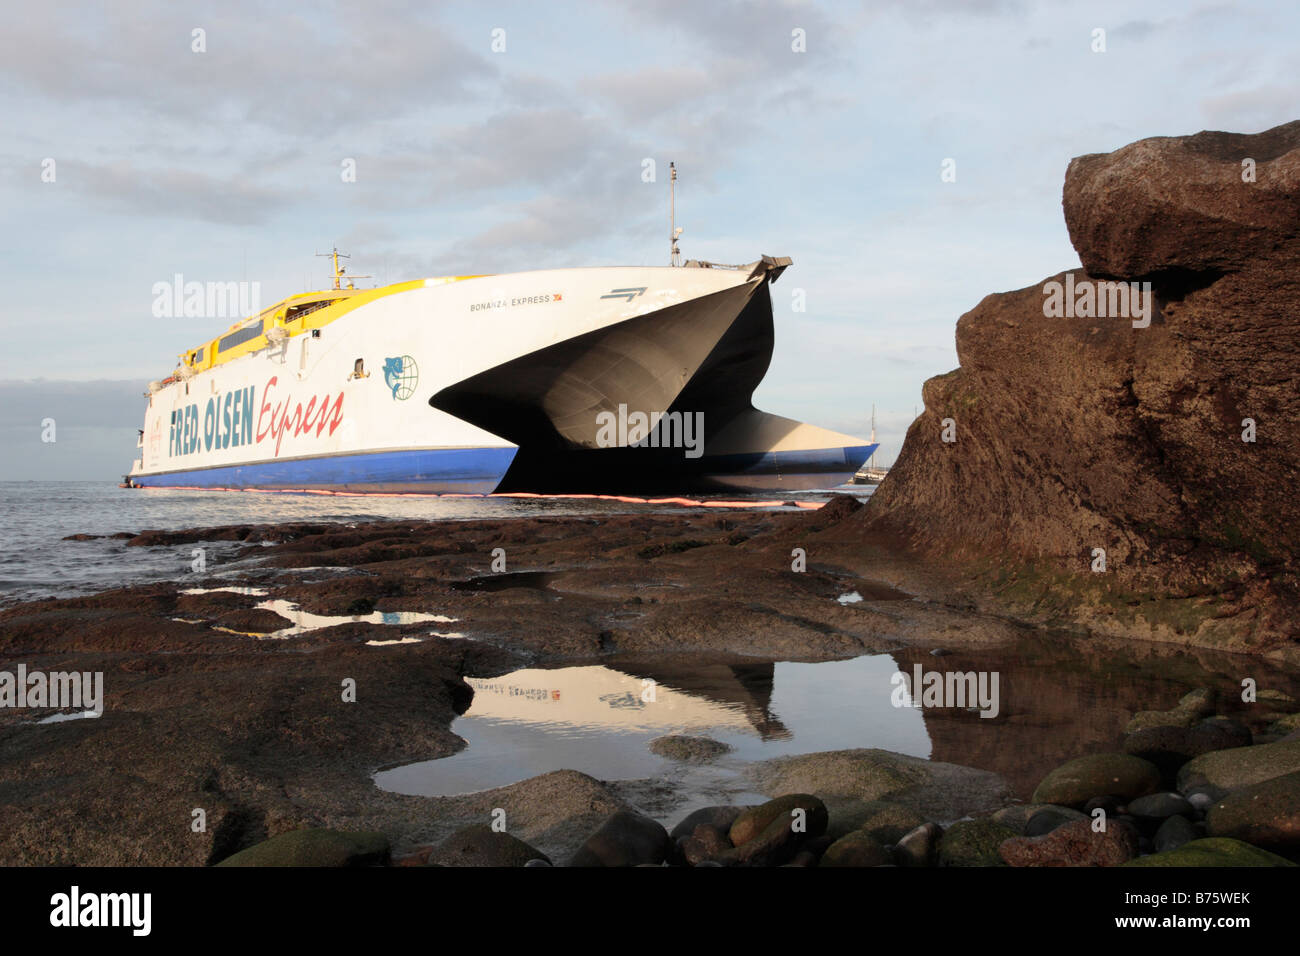 The fred olsen ferry bonanza express run aground due to for Oficina fred olsen los cristianos